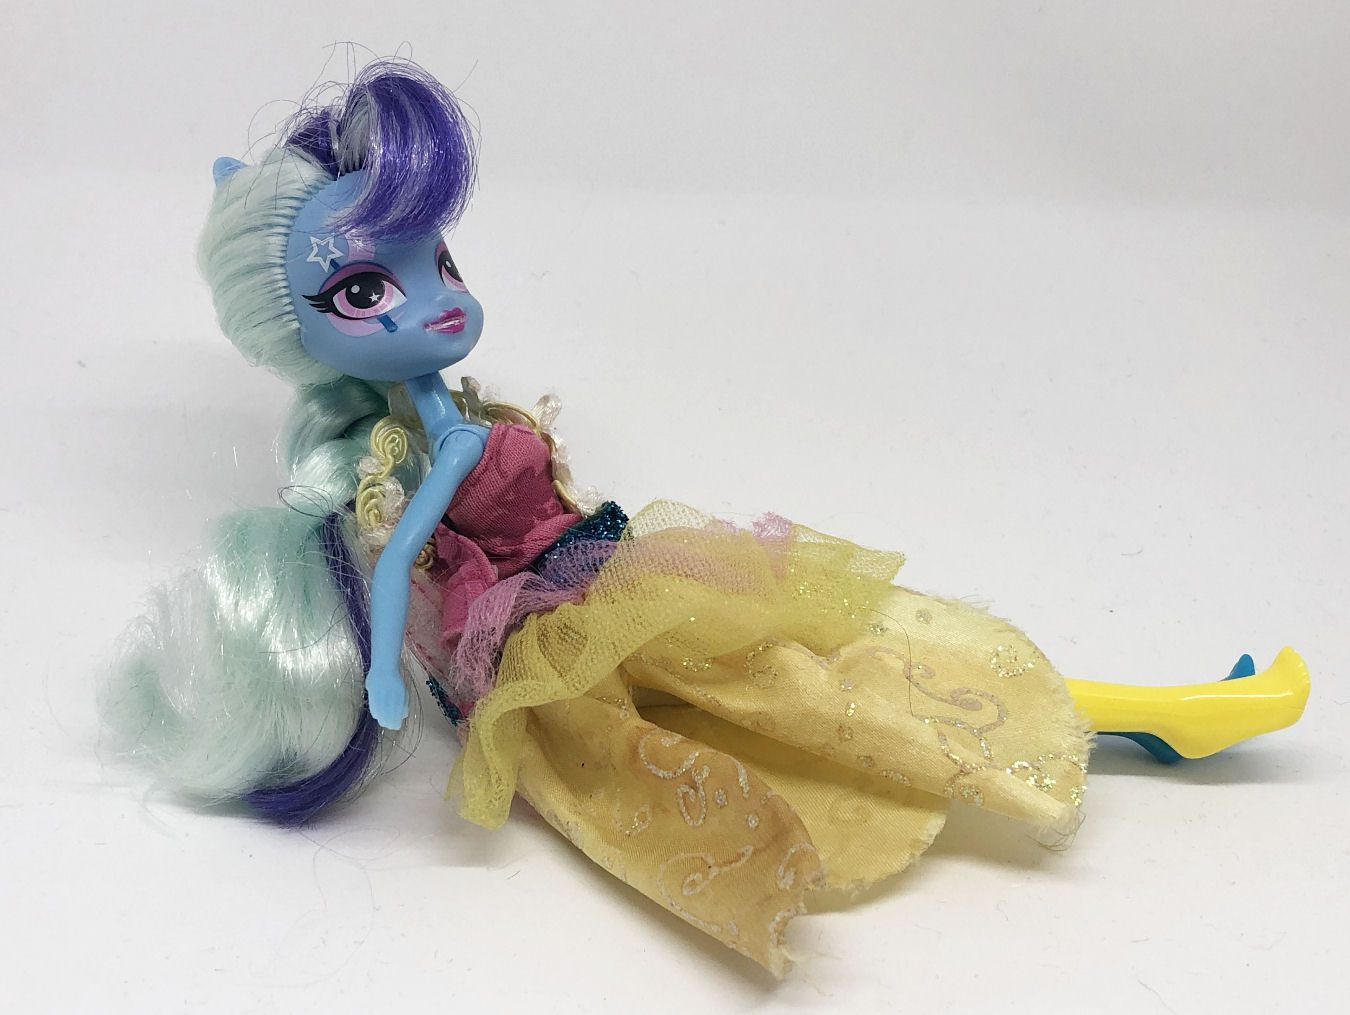 Trixie Lulamoon (Rainbow Rocks)